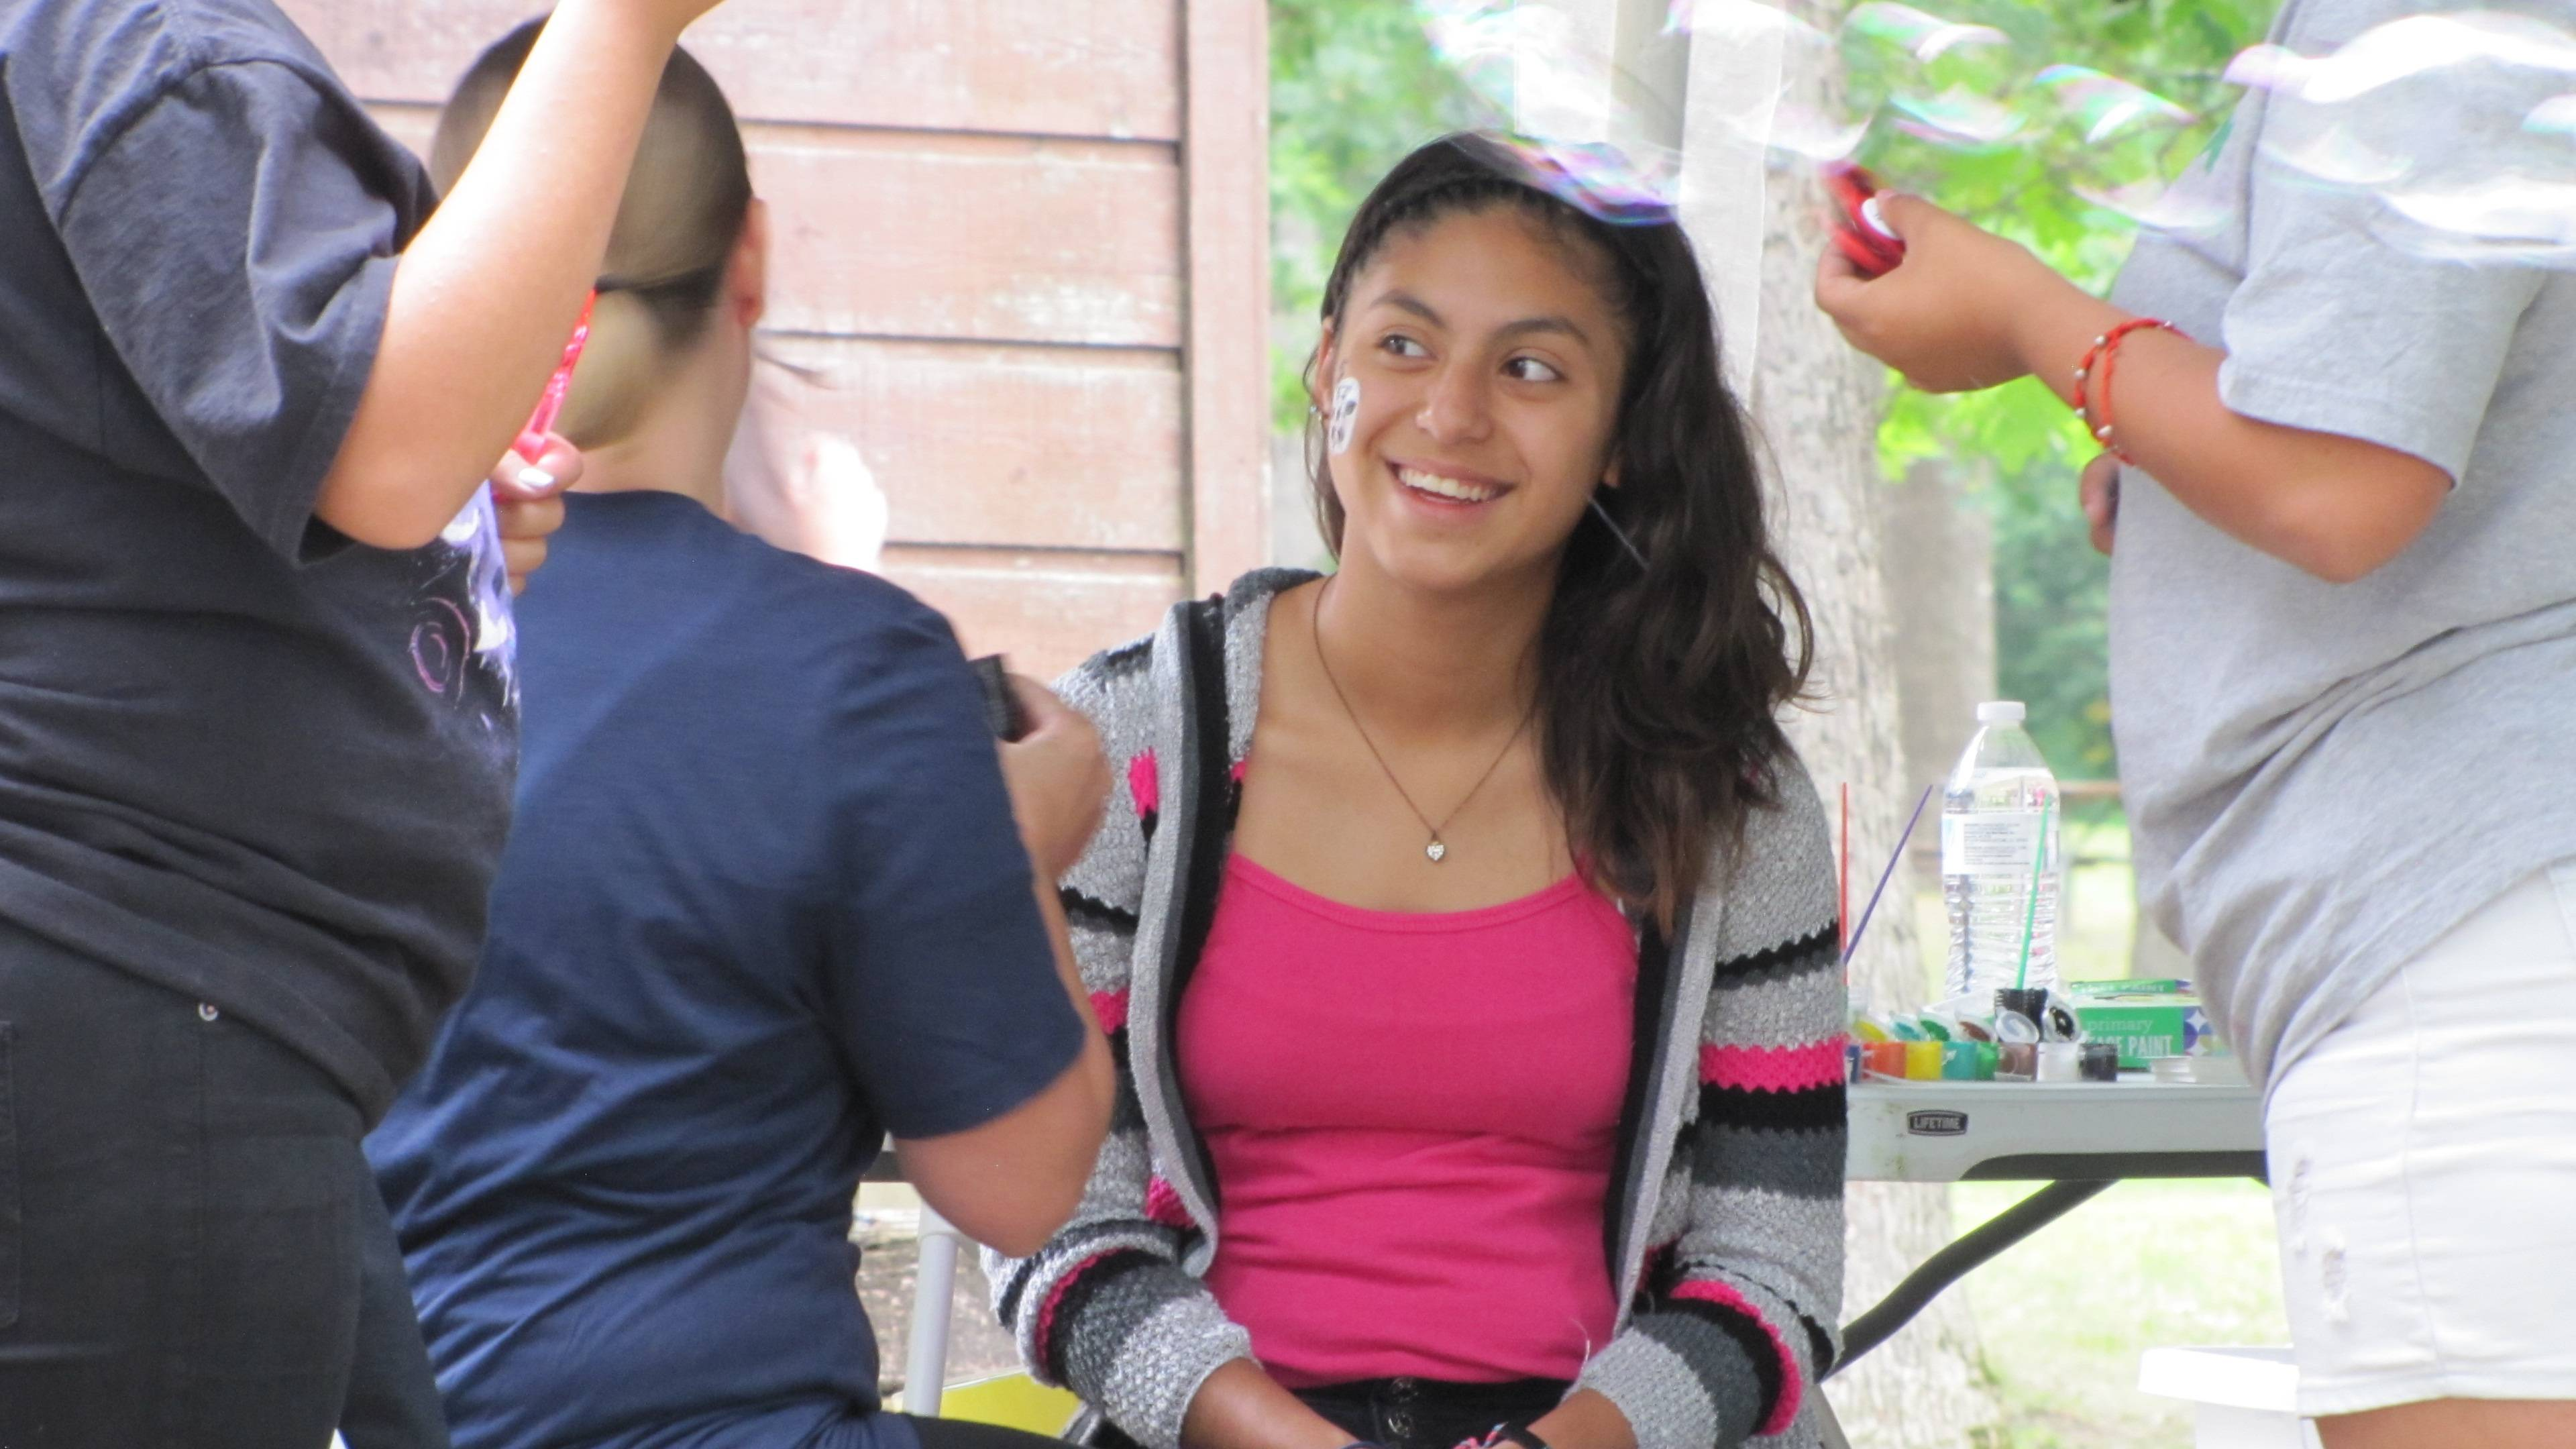 Marlene Banales, a player on Heart of the City's U12 Spartans team, gets her face painted at the cookout at Hinkston Park in Waukegan. Heart of the City